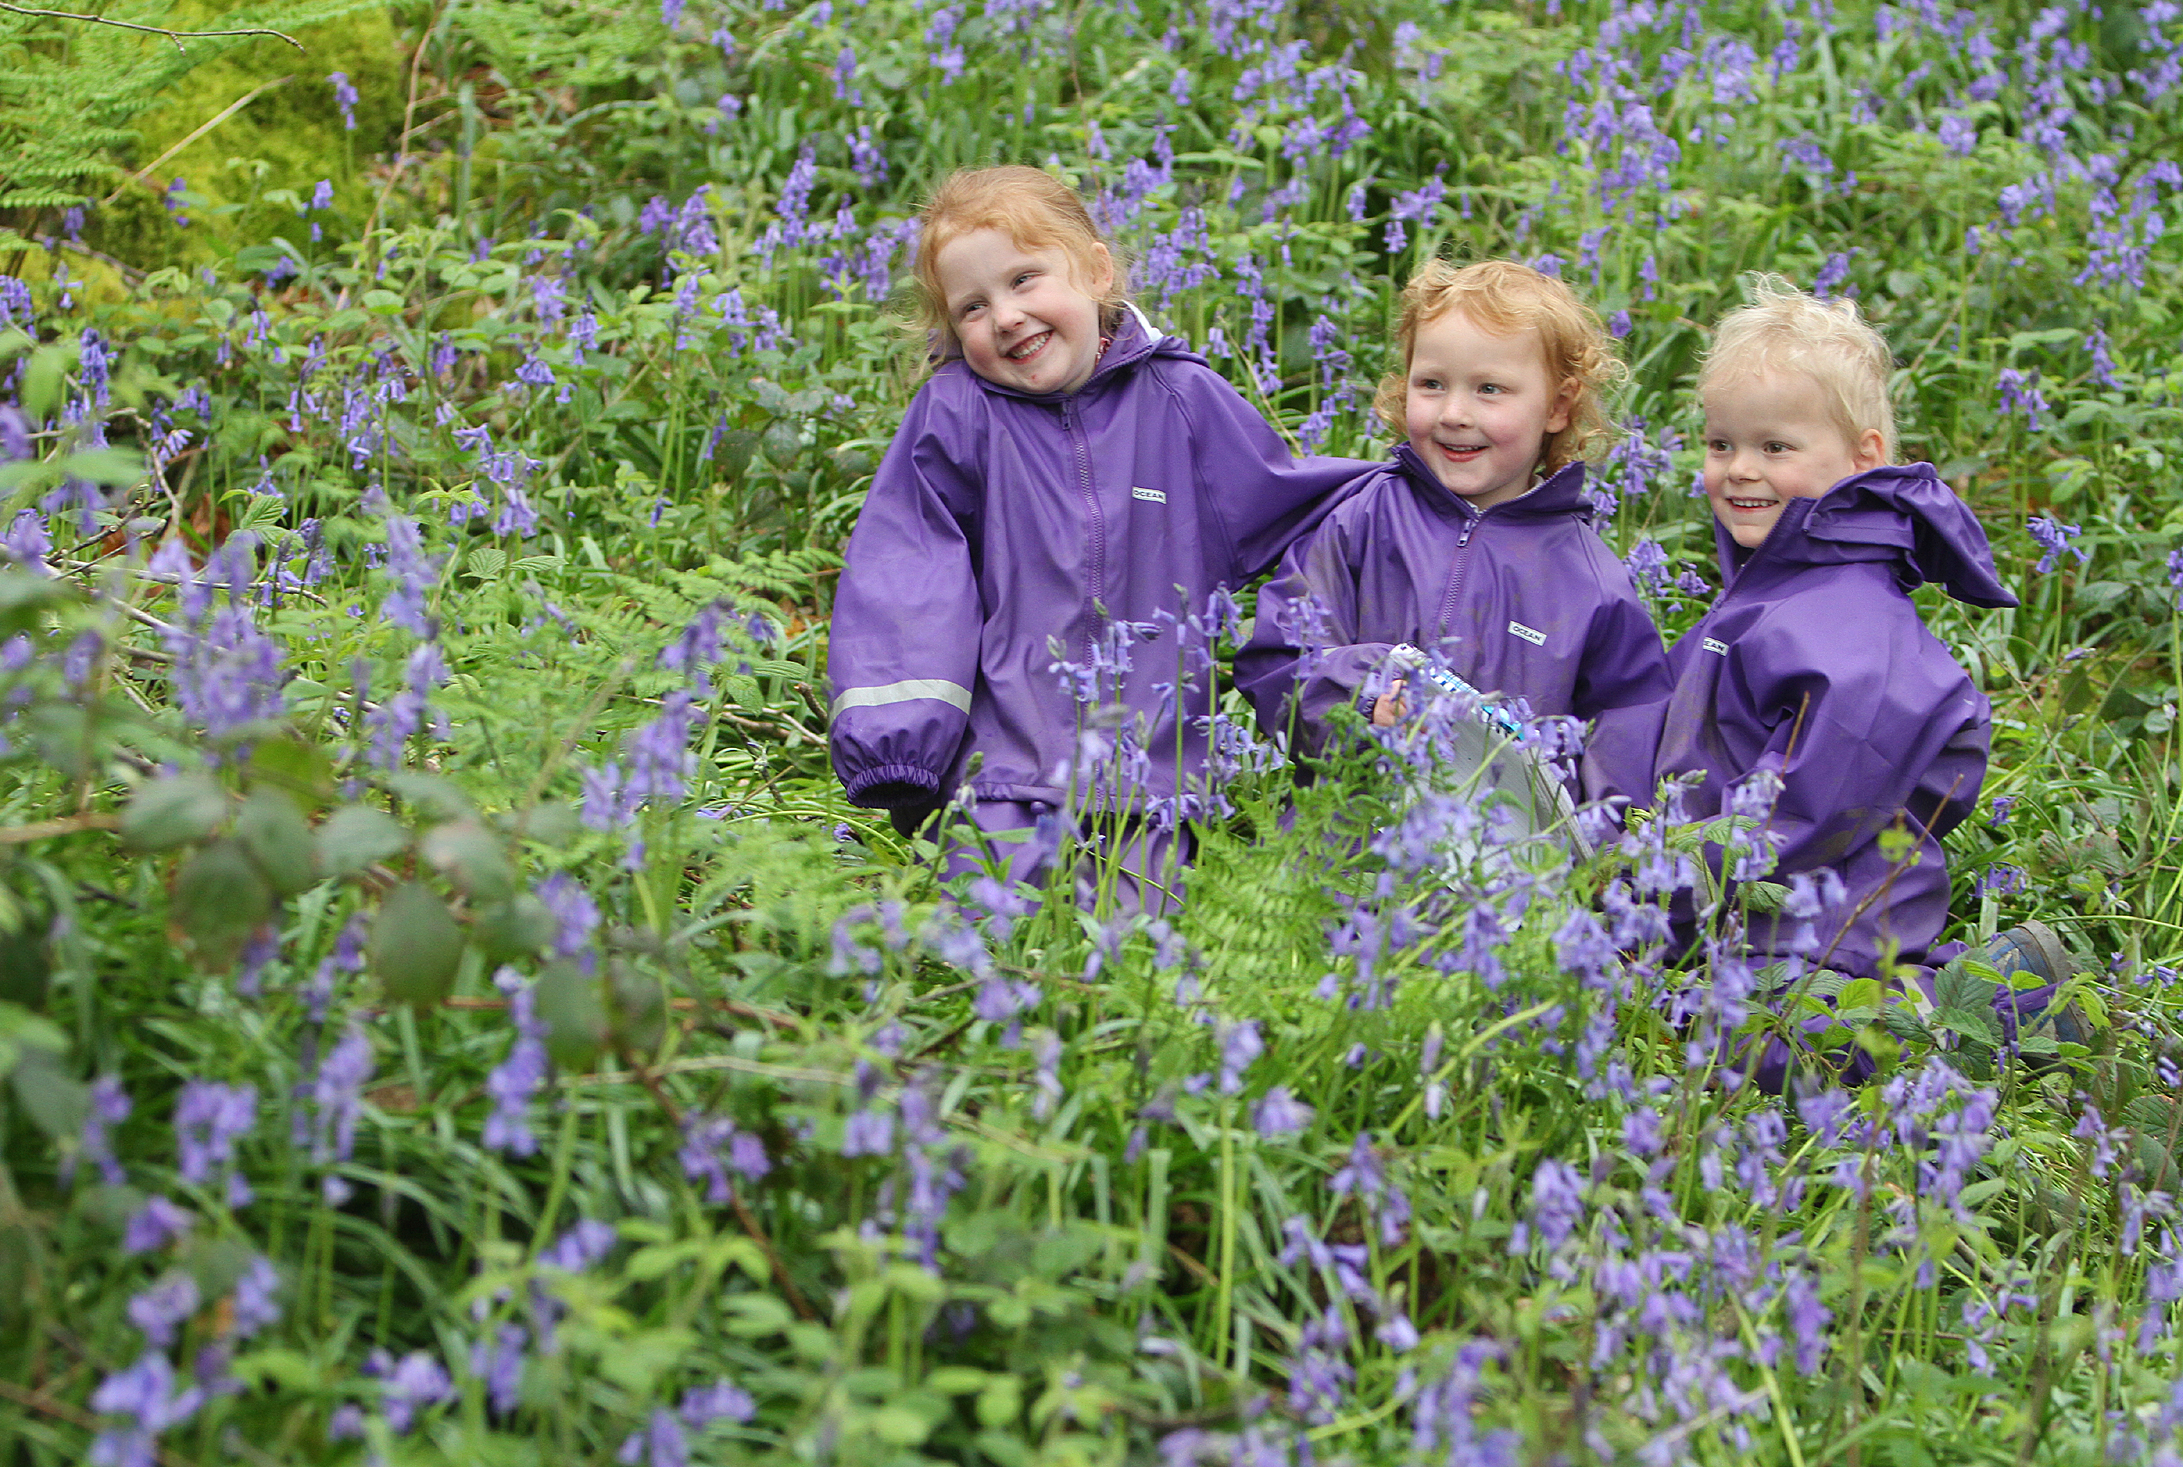 Lottie Oliver, Mabel Whitaker and Ted Hargreaves are surrounded by bluebells in the wooded area at Giggleswick Junior School